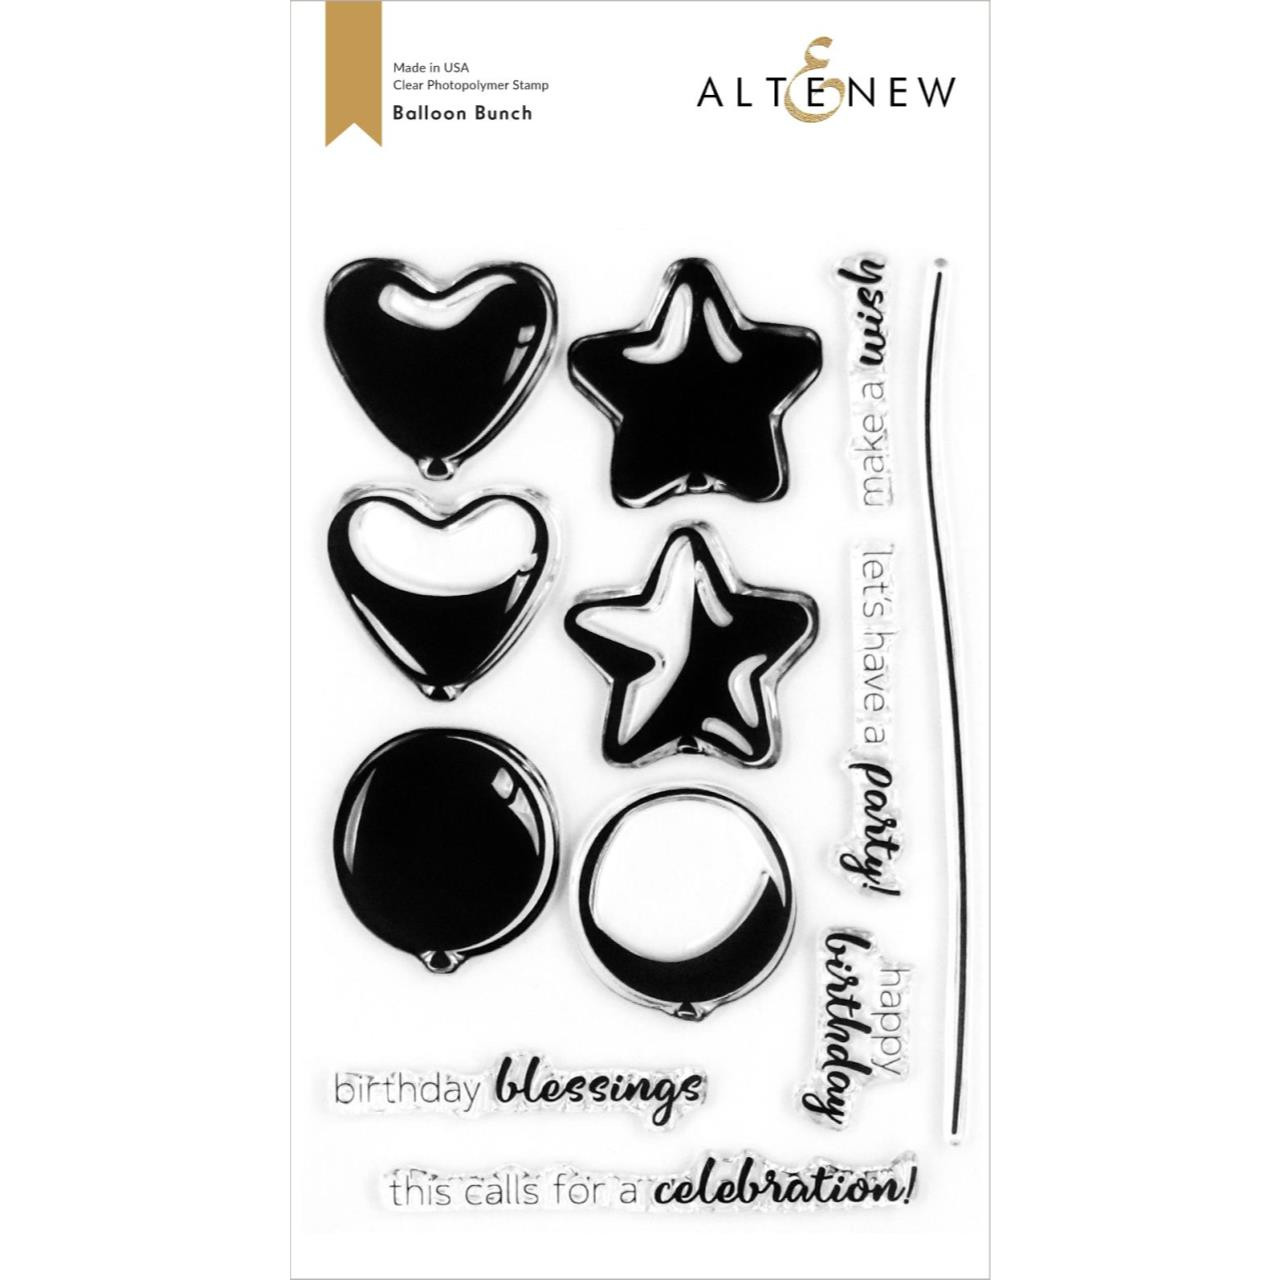 Balloon Bunch, Altenew Clear Stamps - 737787266212